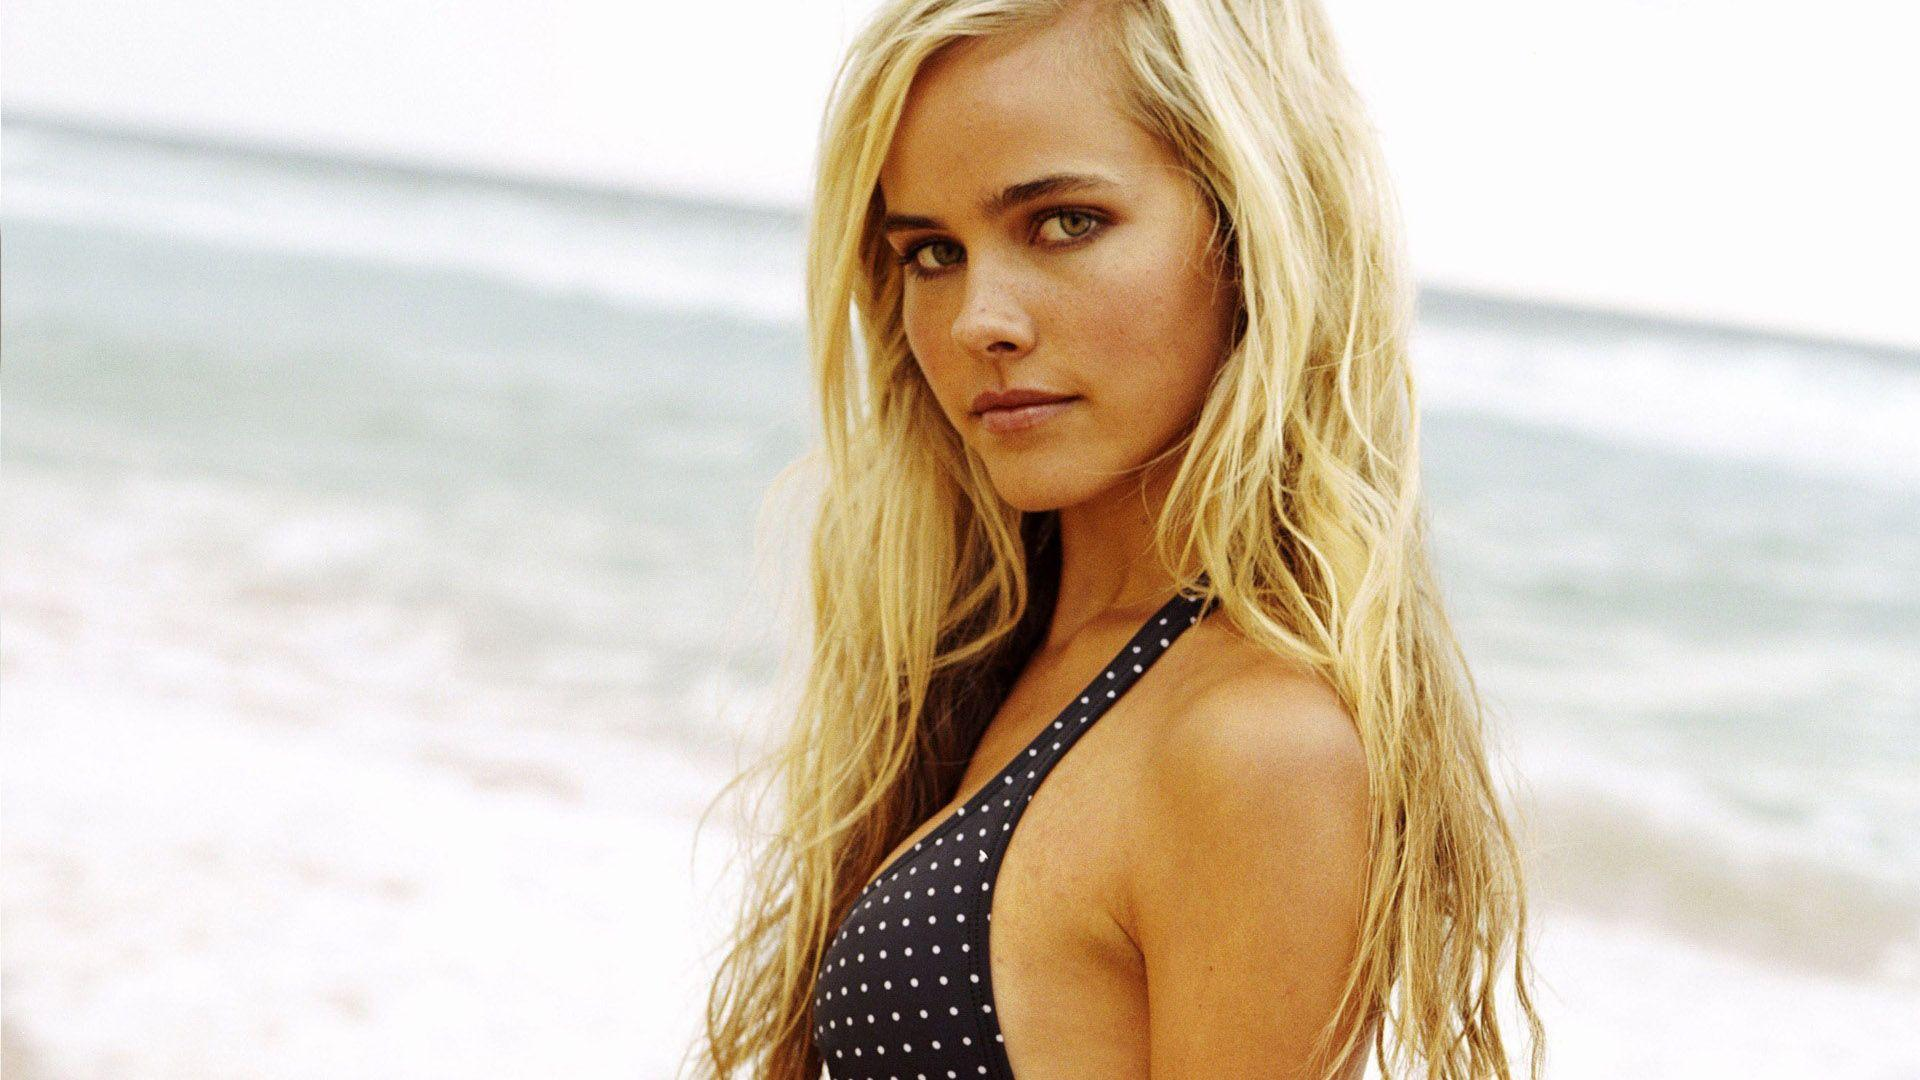 image Isabel lucas careful what you wish for 02